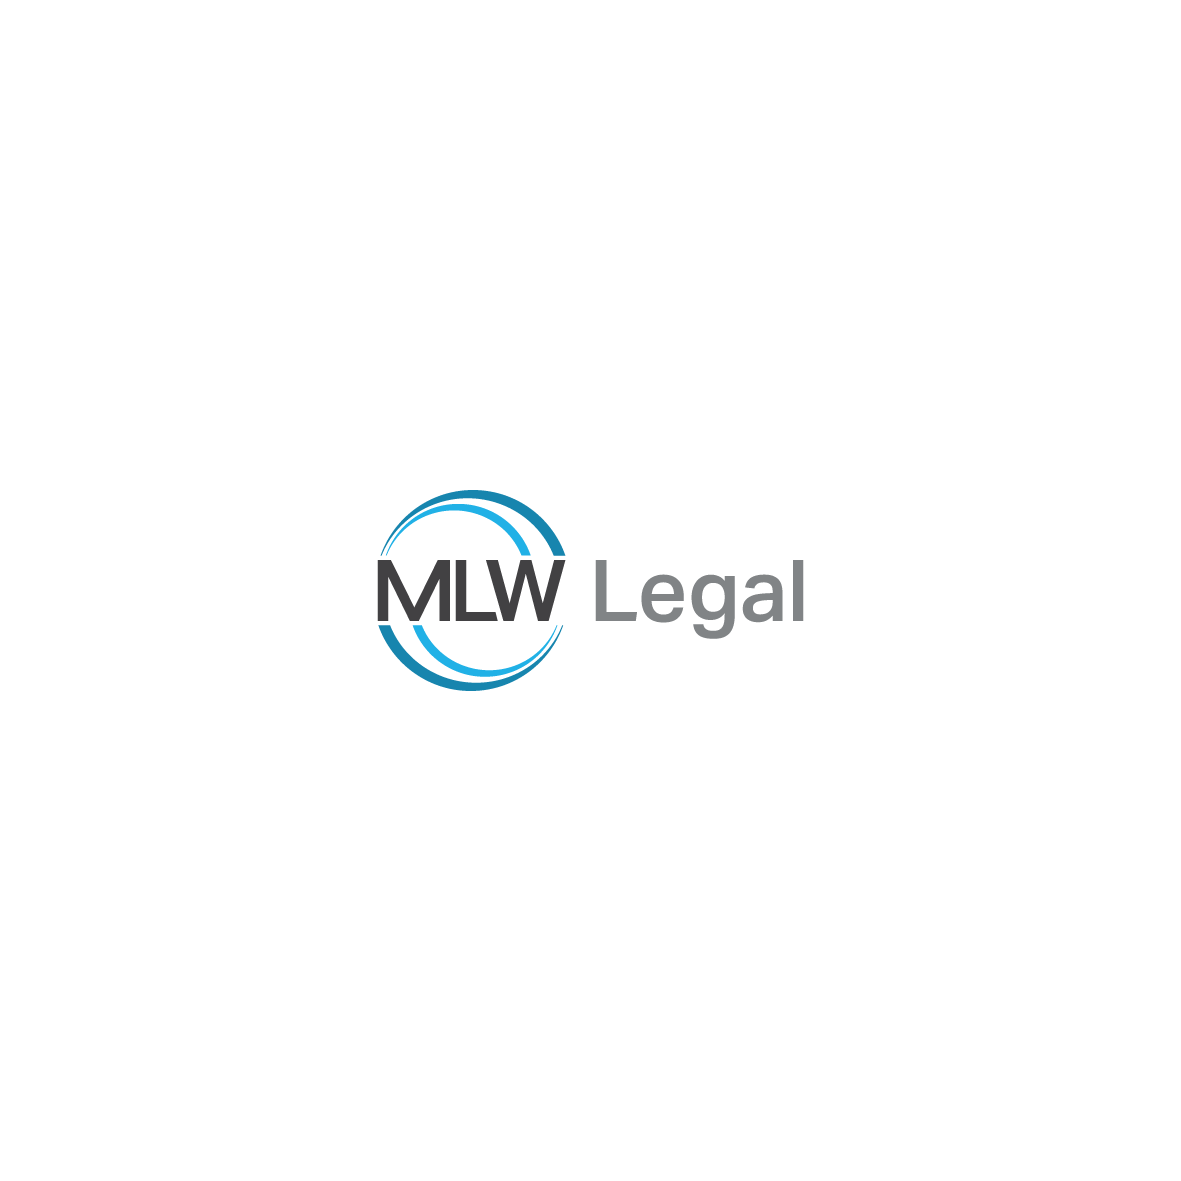 Design a modern, sophisticated logo for a new law firm